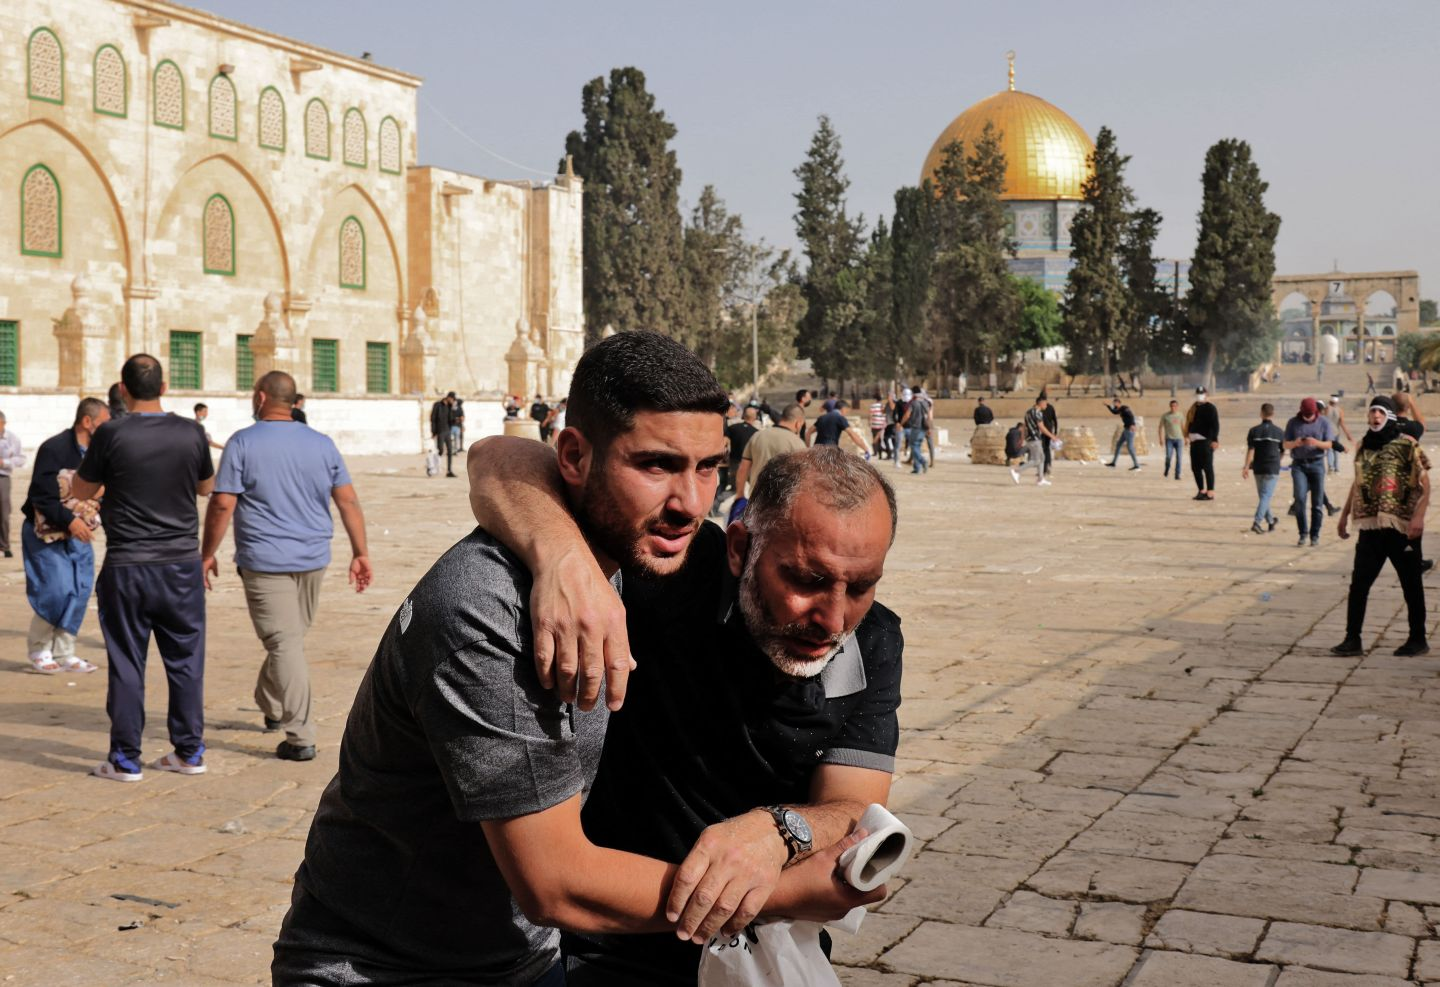 A Palestinianman helps a wounded fellow protester amid clashes with Israeli security forces at Jerusalem's Al-Aqsa mosque compound on May 10, 2021, ahead of a planned march to commemorate Israel's takeover of Jerusalem in the 1967 Six-Day War.